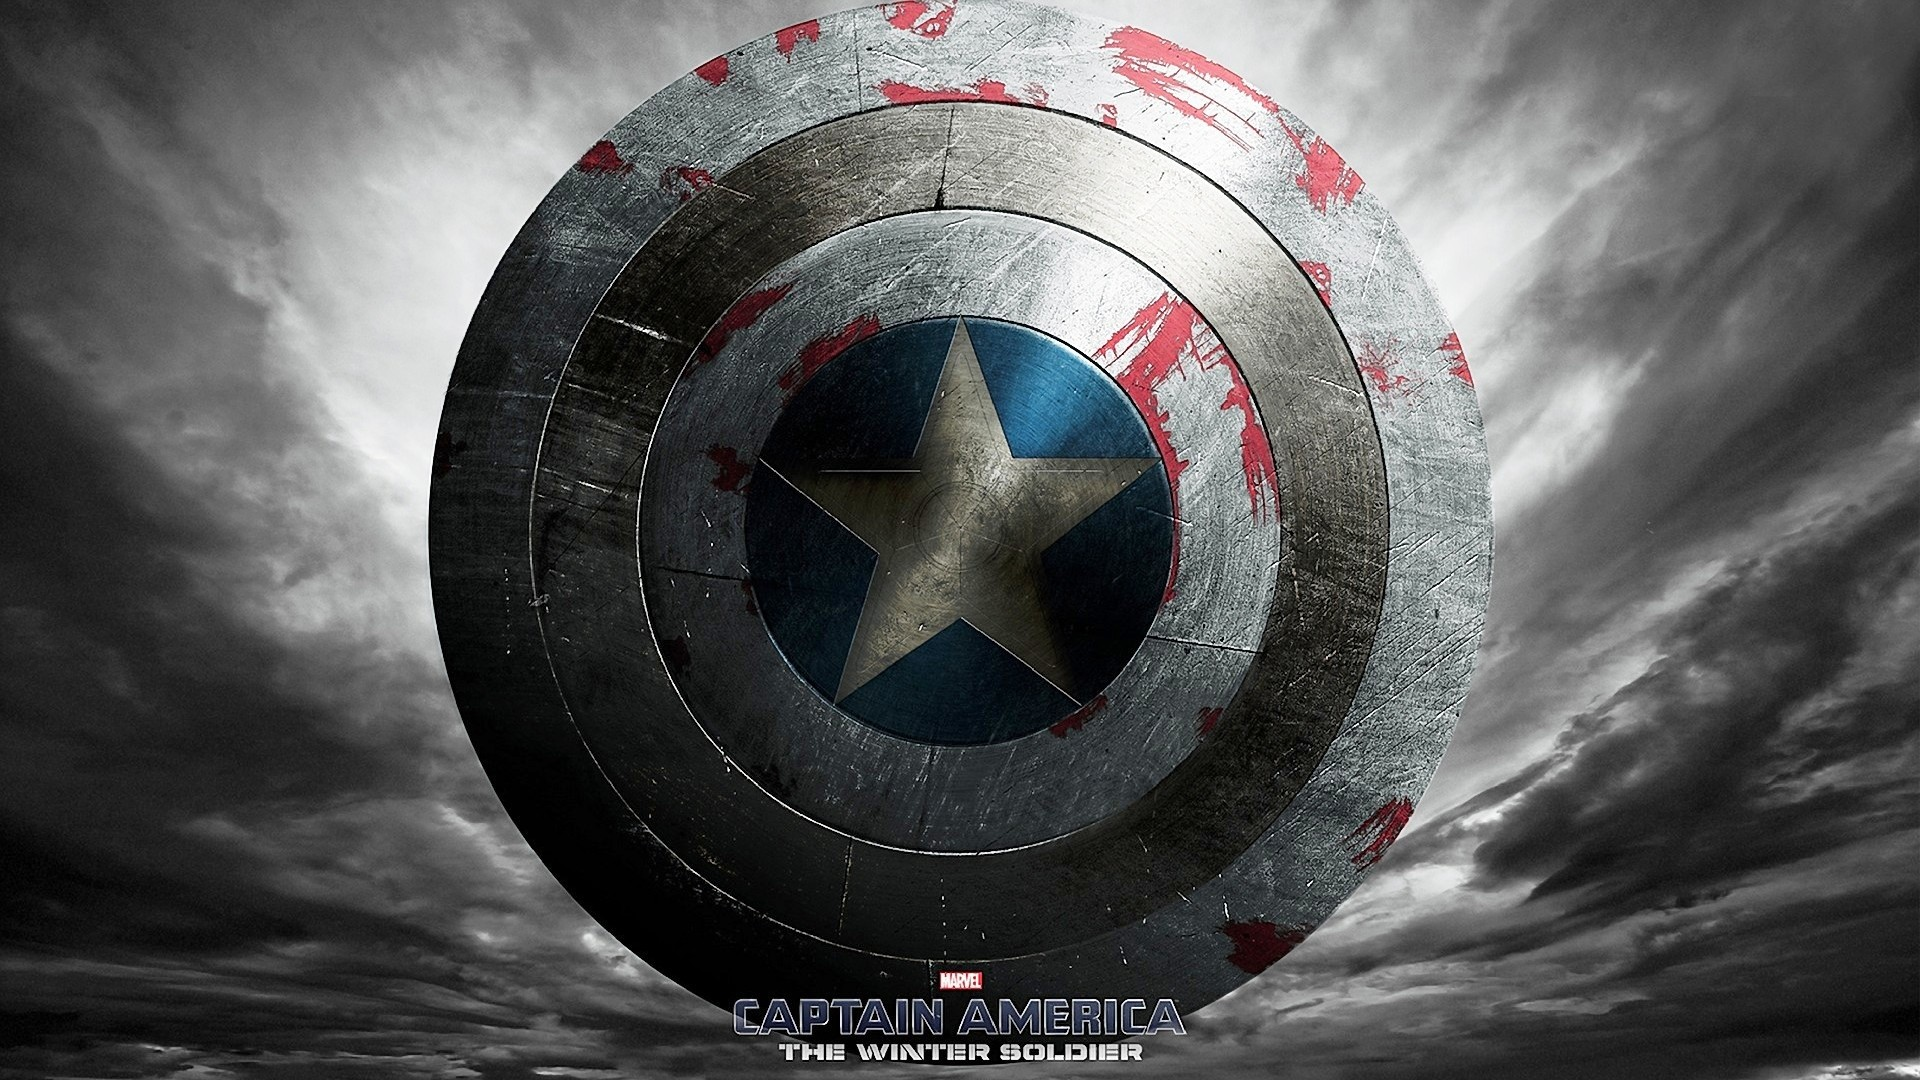 Captain america shield wallpaper hd 84 images for Where to get wallpaper